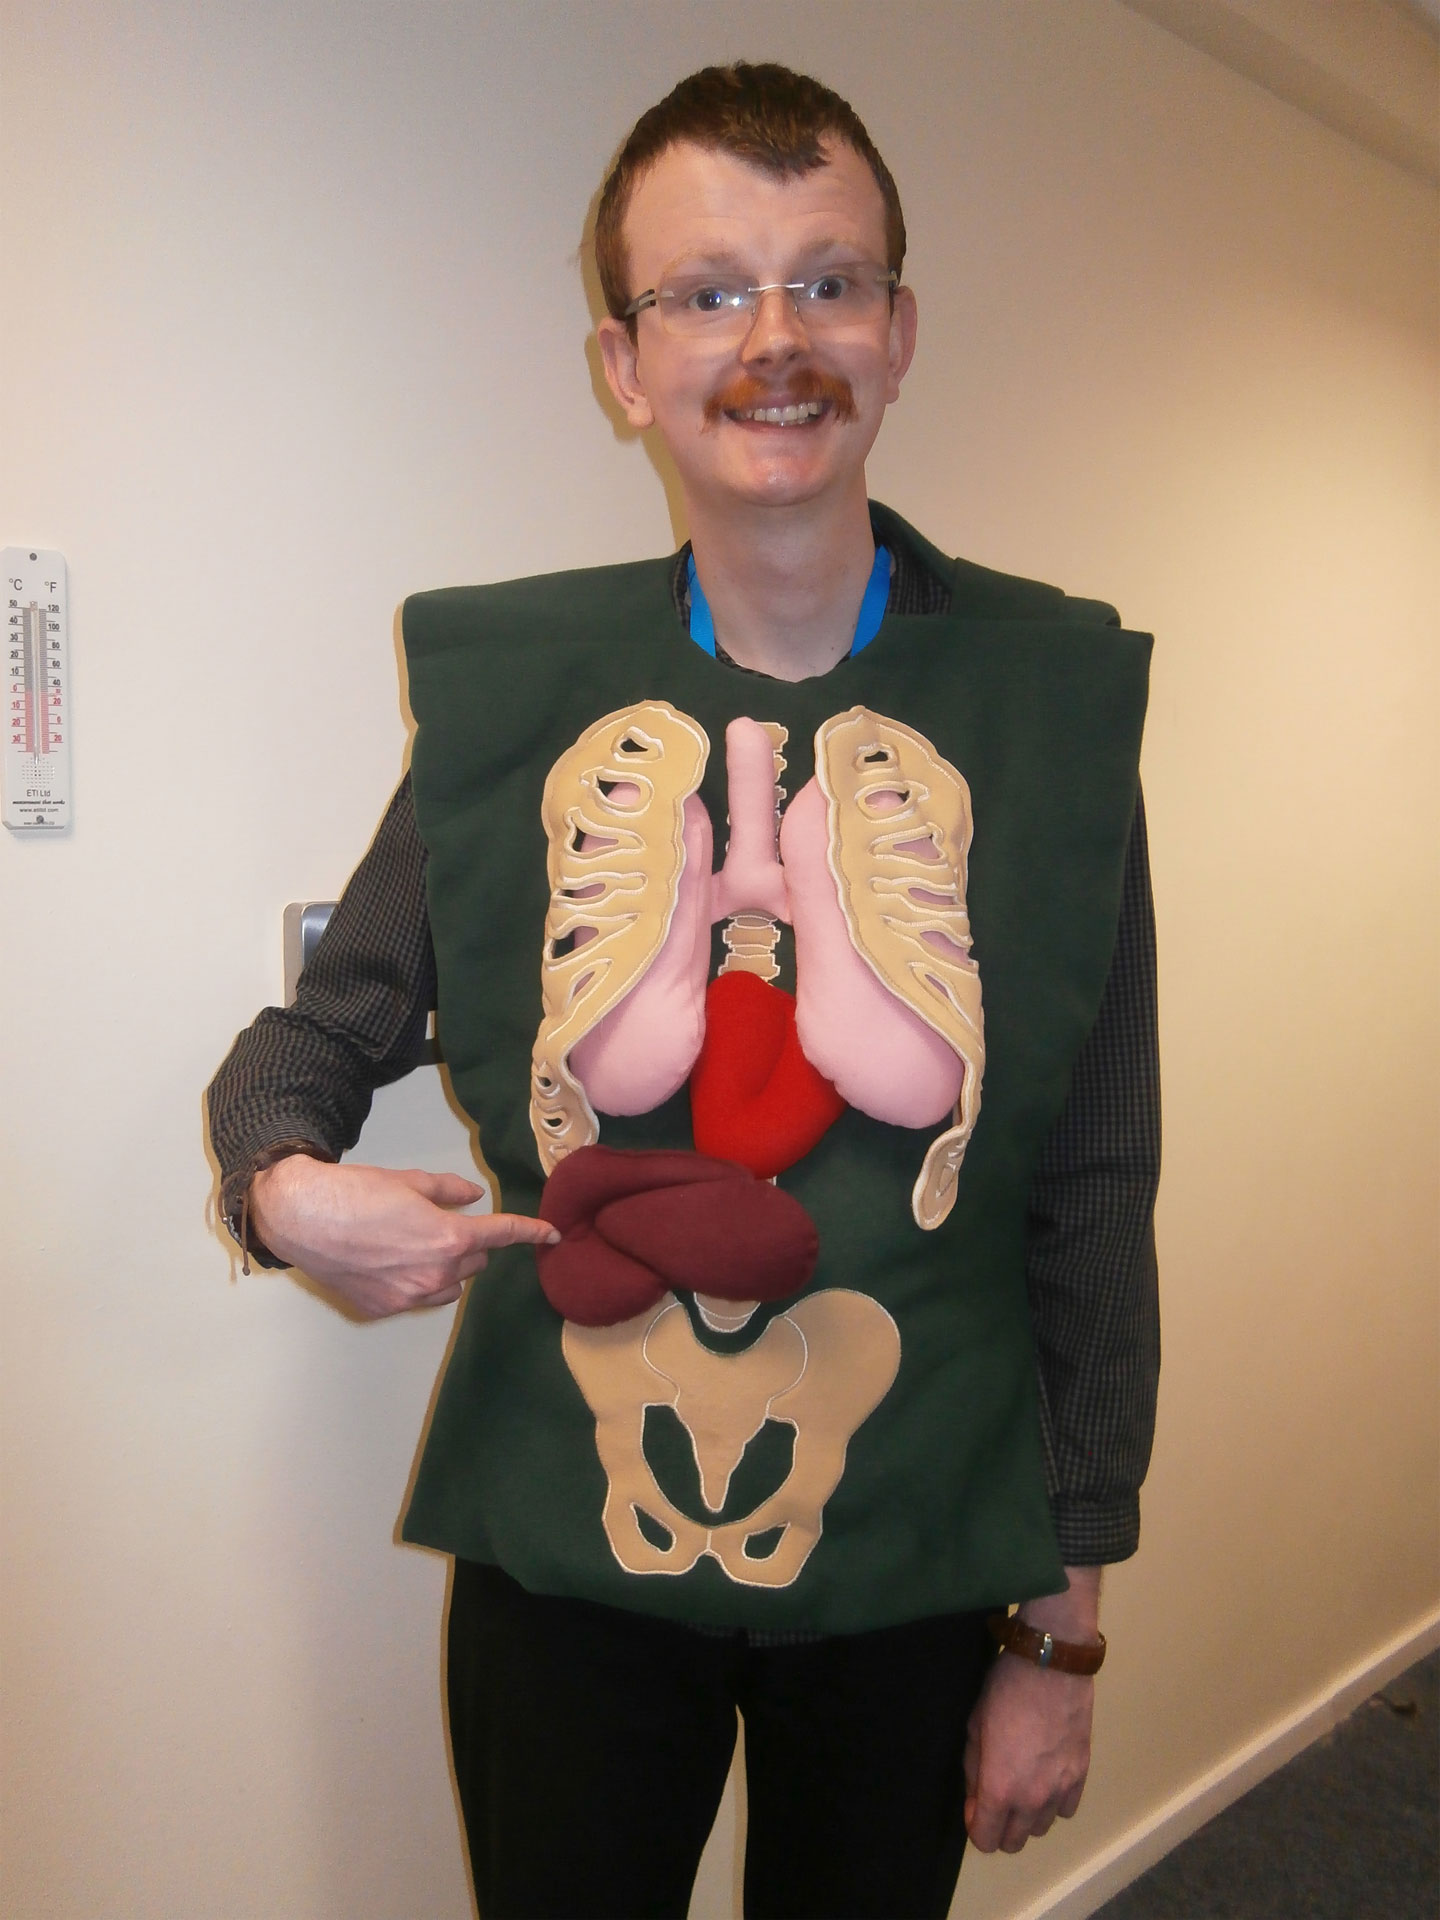 learning-disabilities-staff-member-with-body-apron.JPG